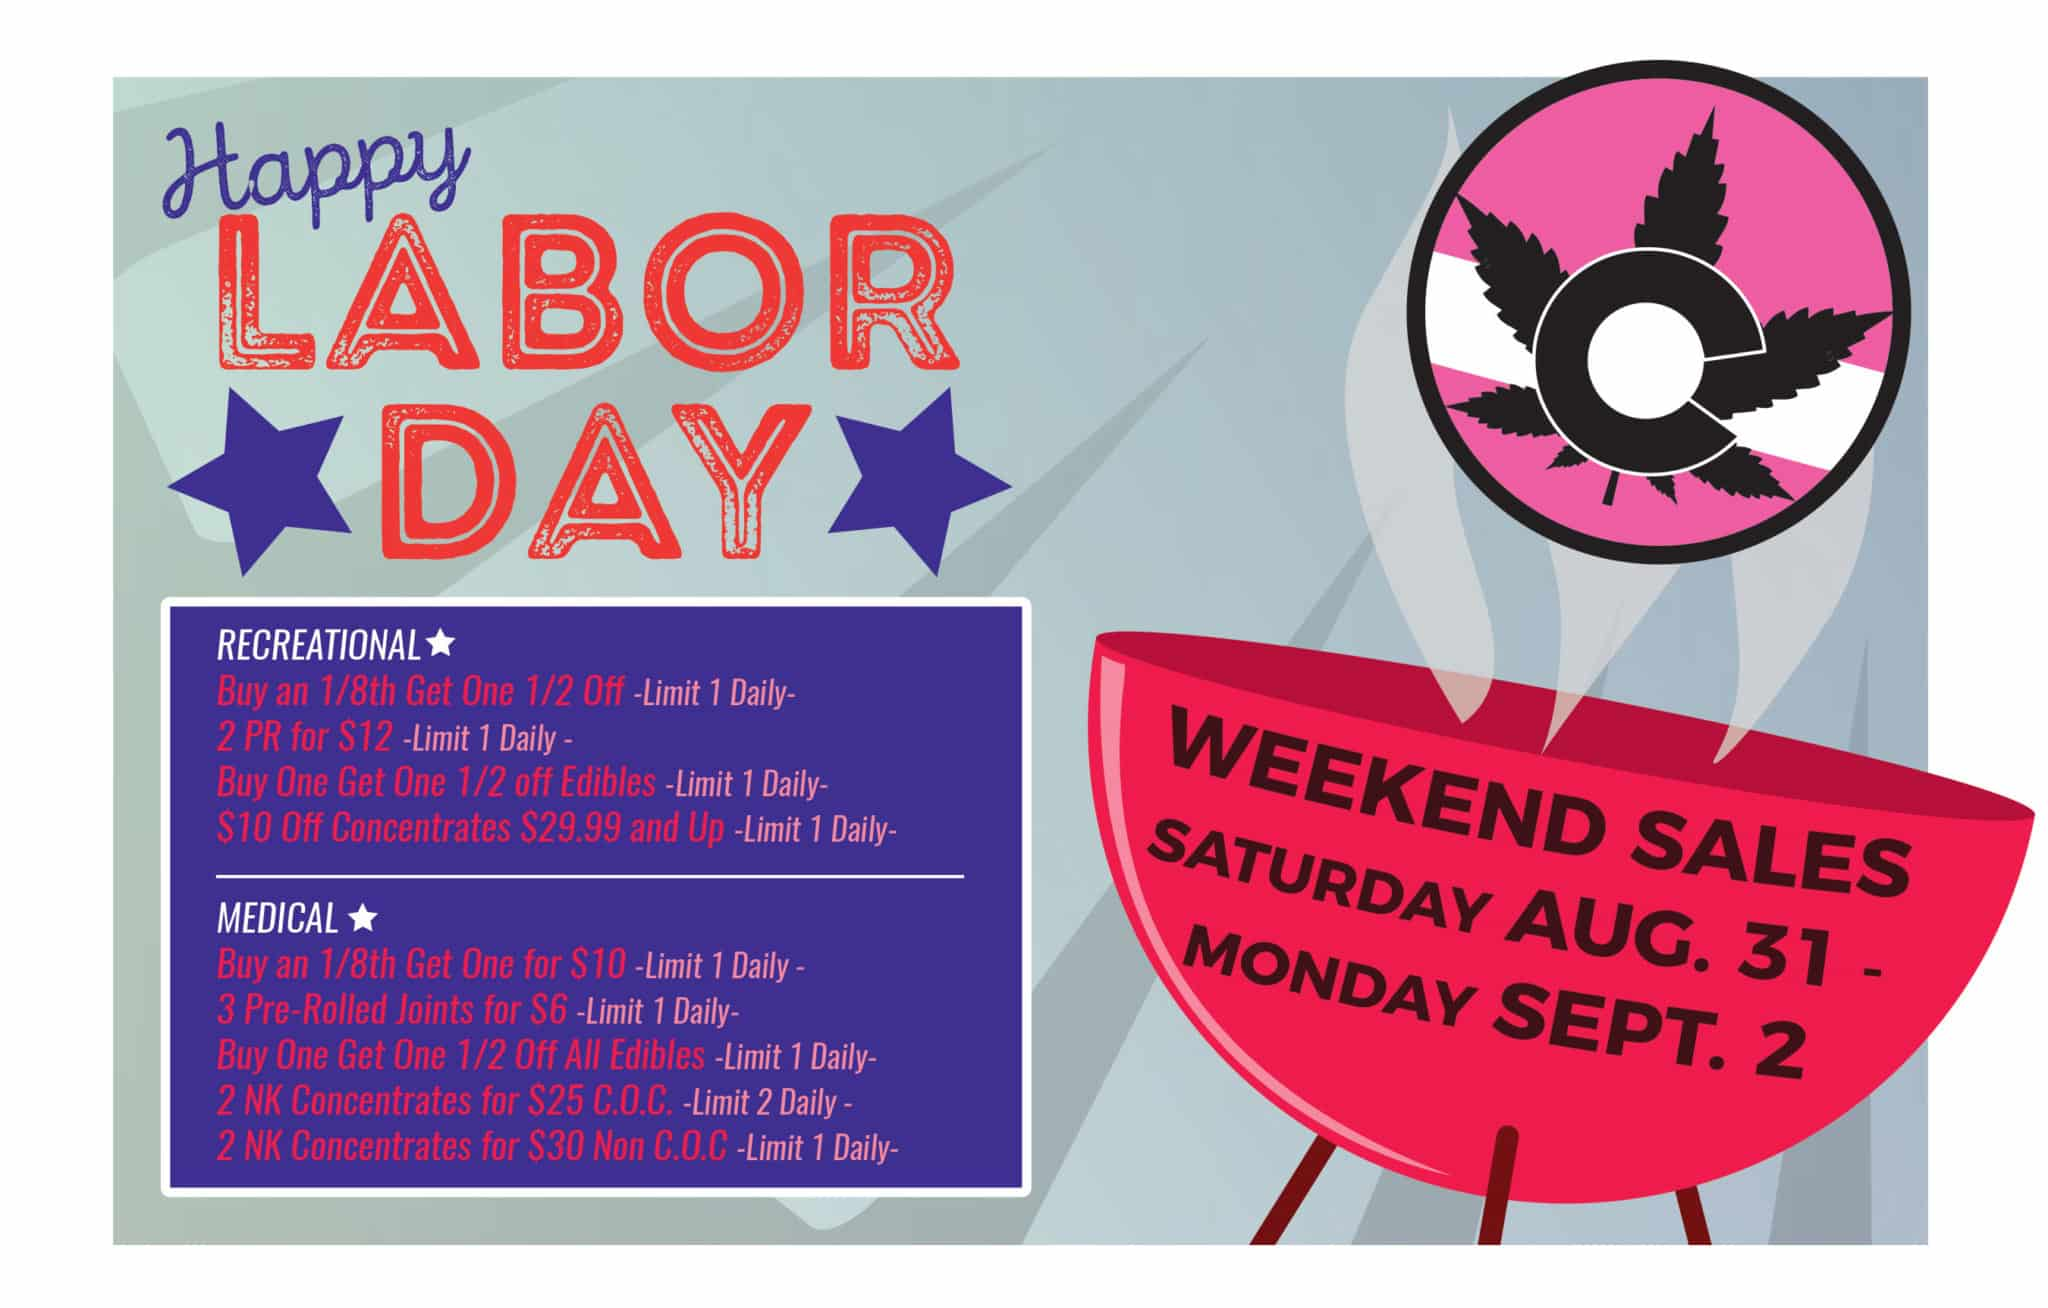 Nature's Herbs and Wellness | Labor Day Weekend Sales 2019